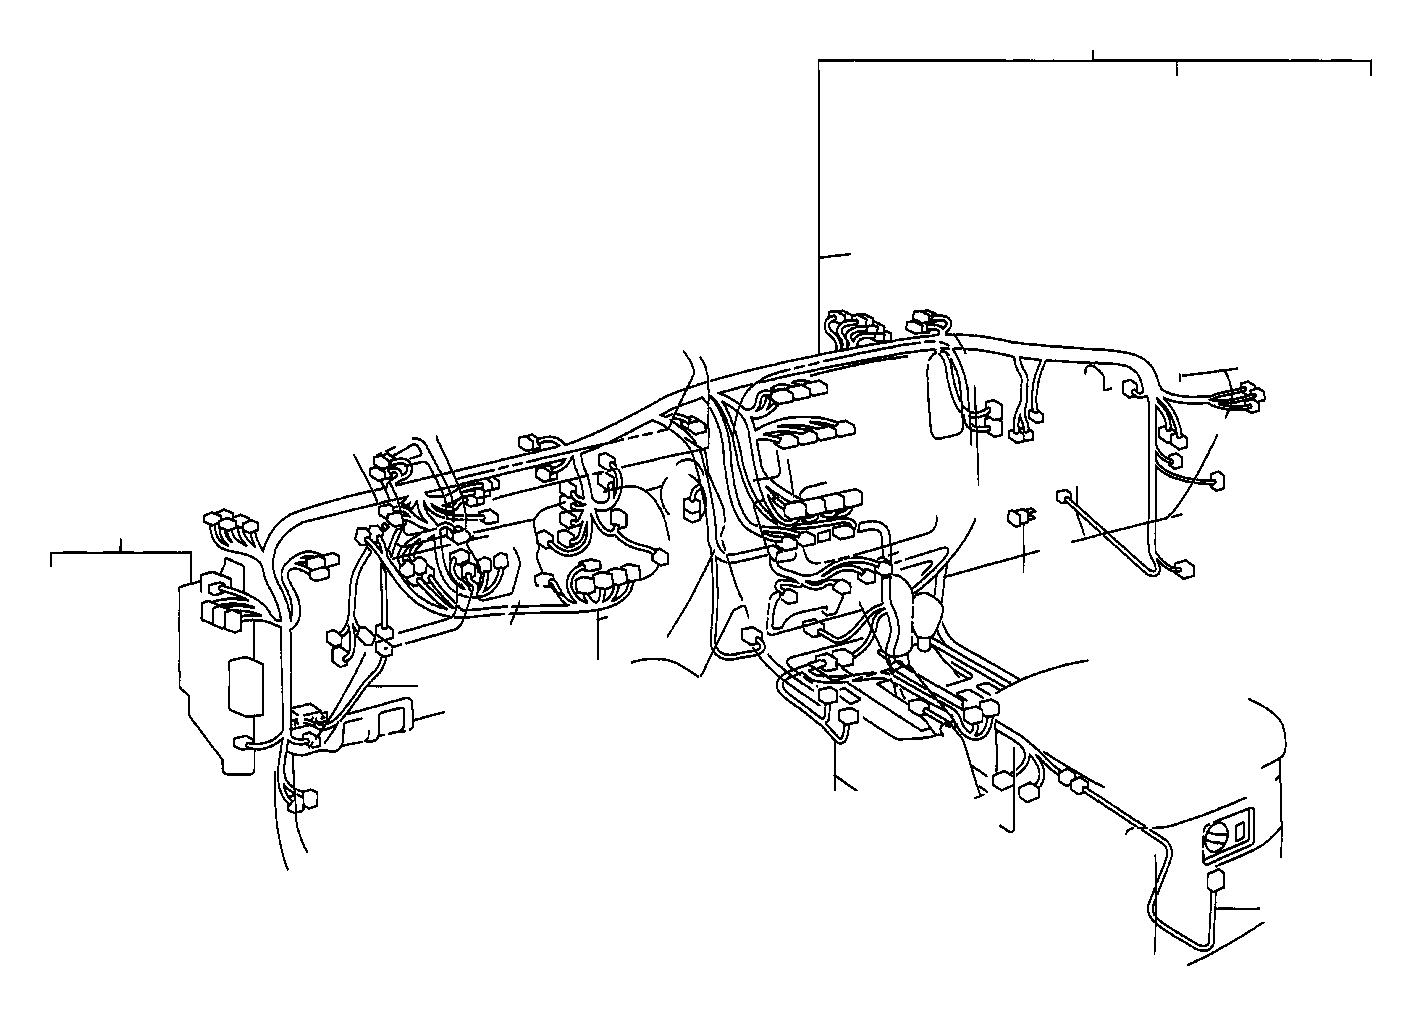 Toyota Land Cruiser Wire, column. Wiring, electrical